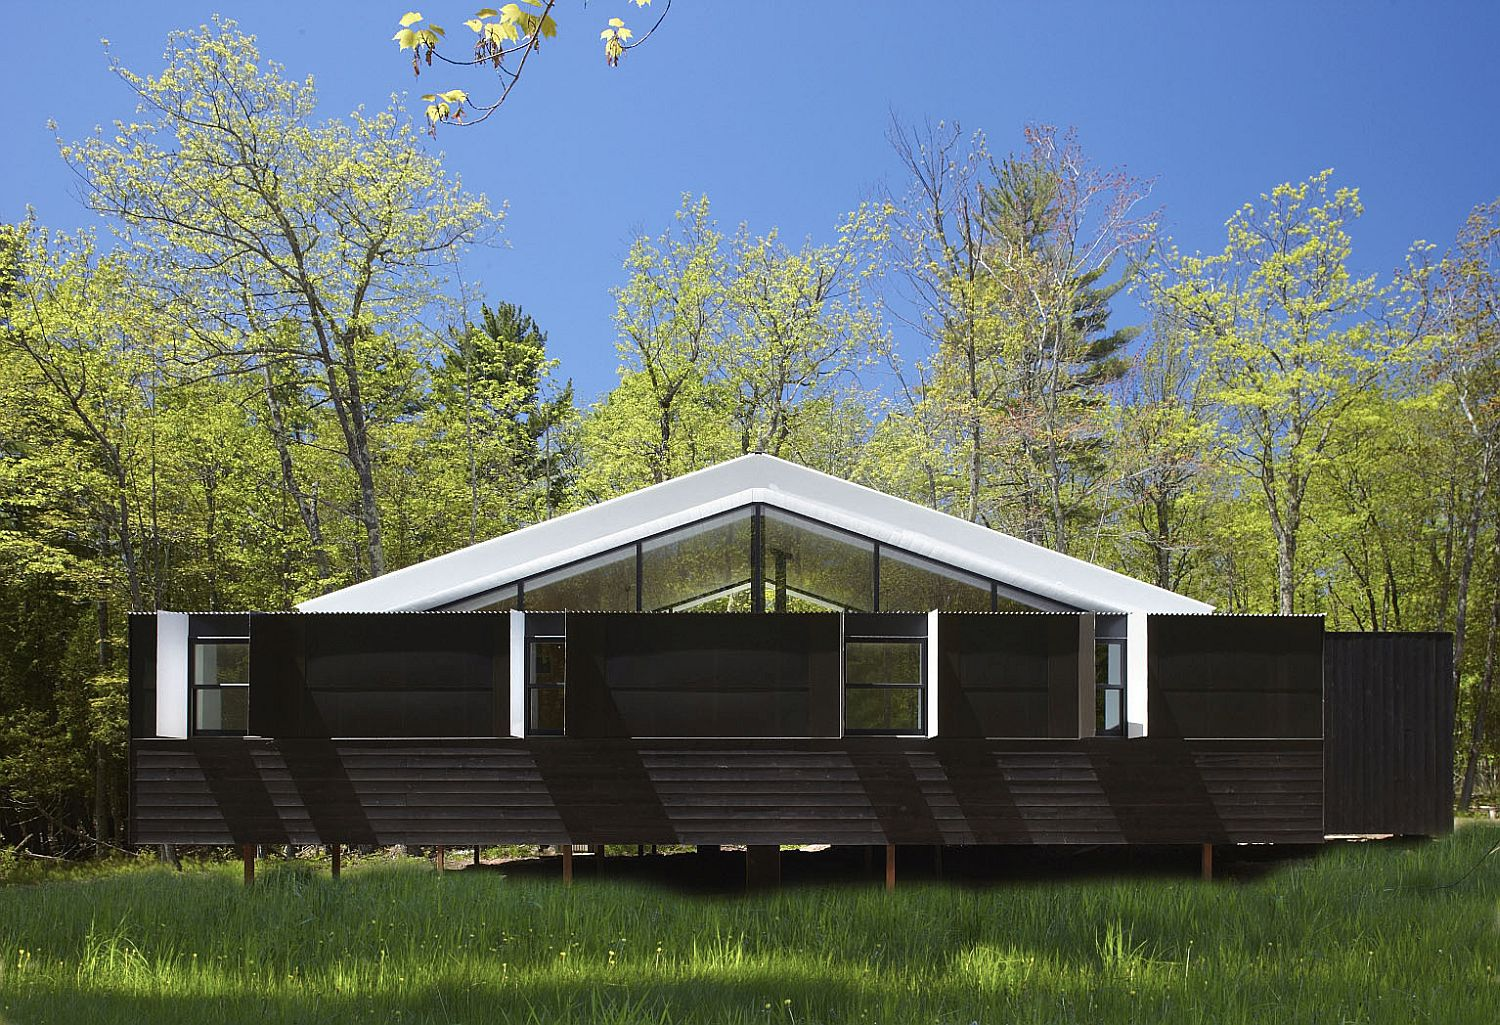 Versatile exterior of the weekend getaway opens and closes as needed